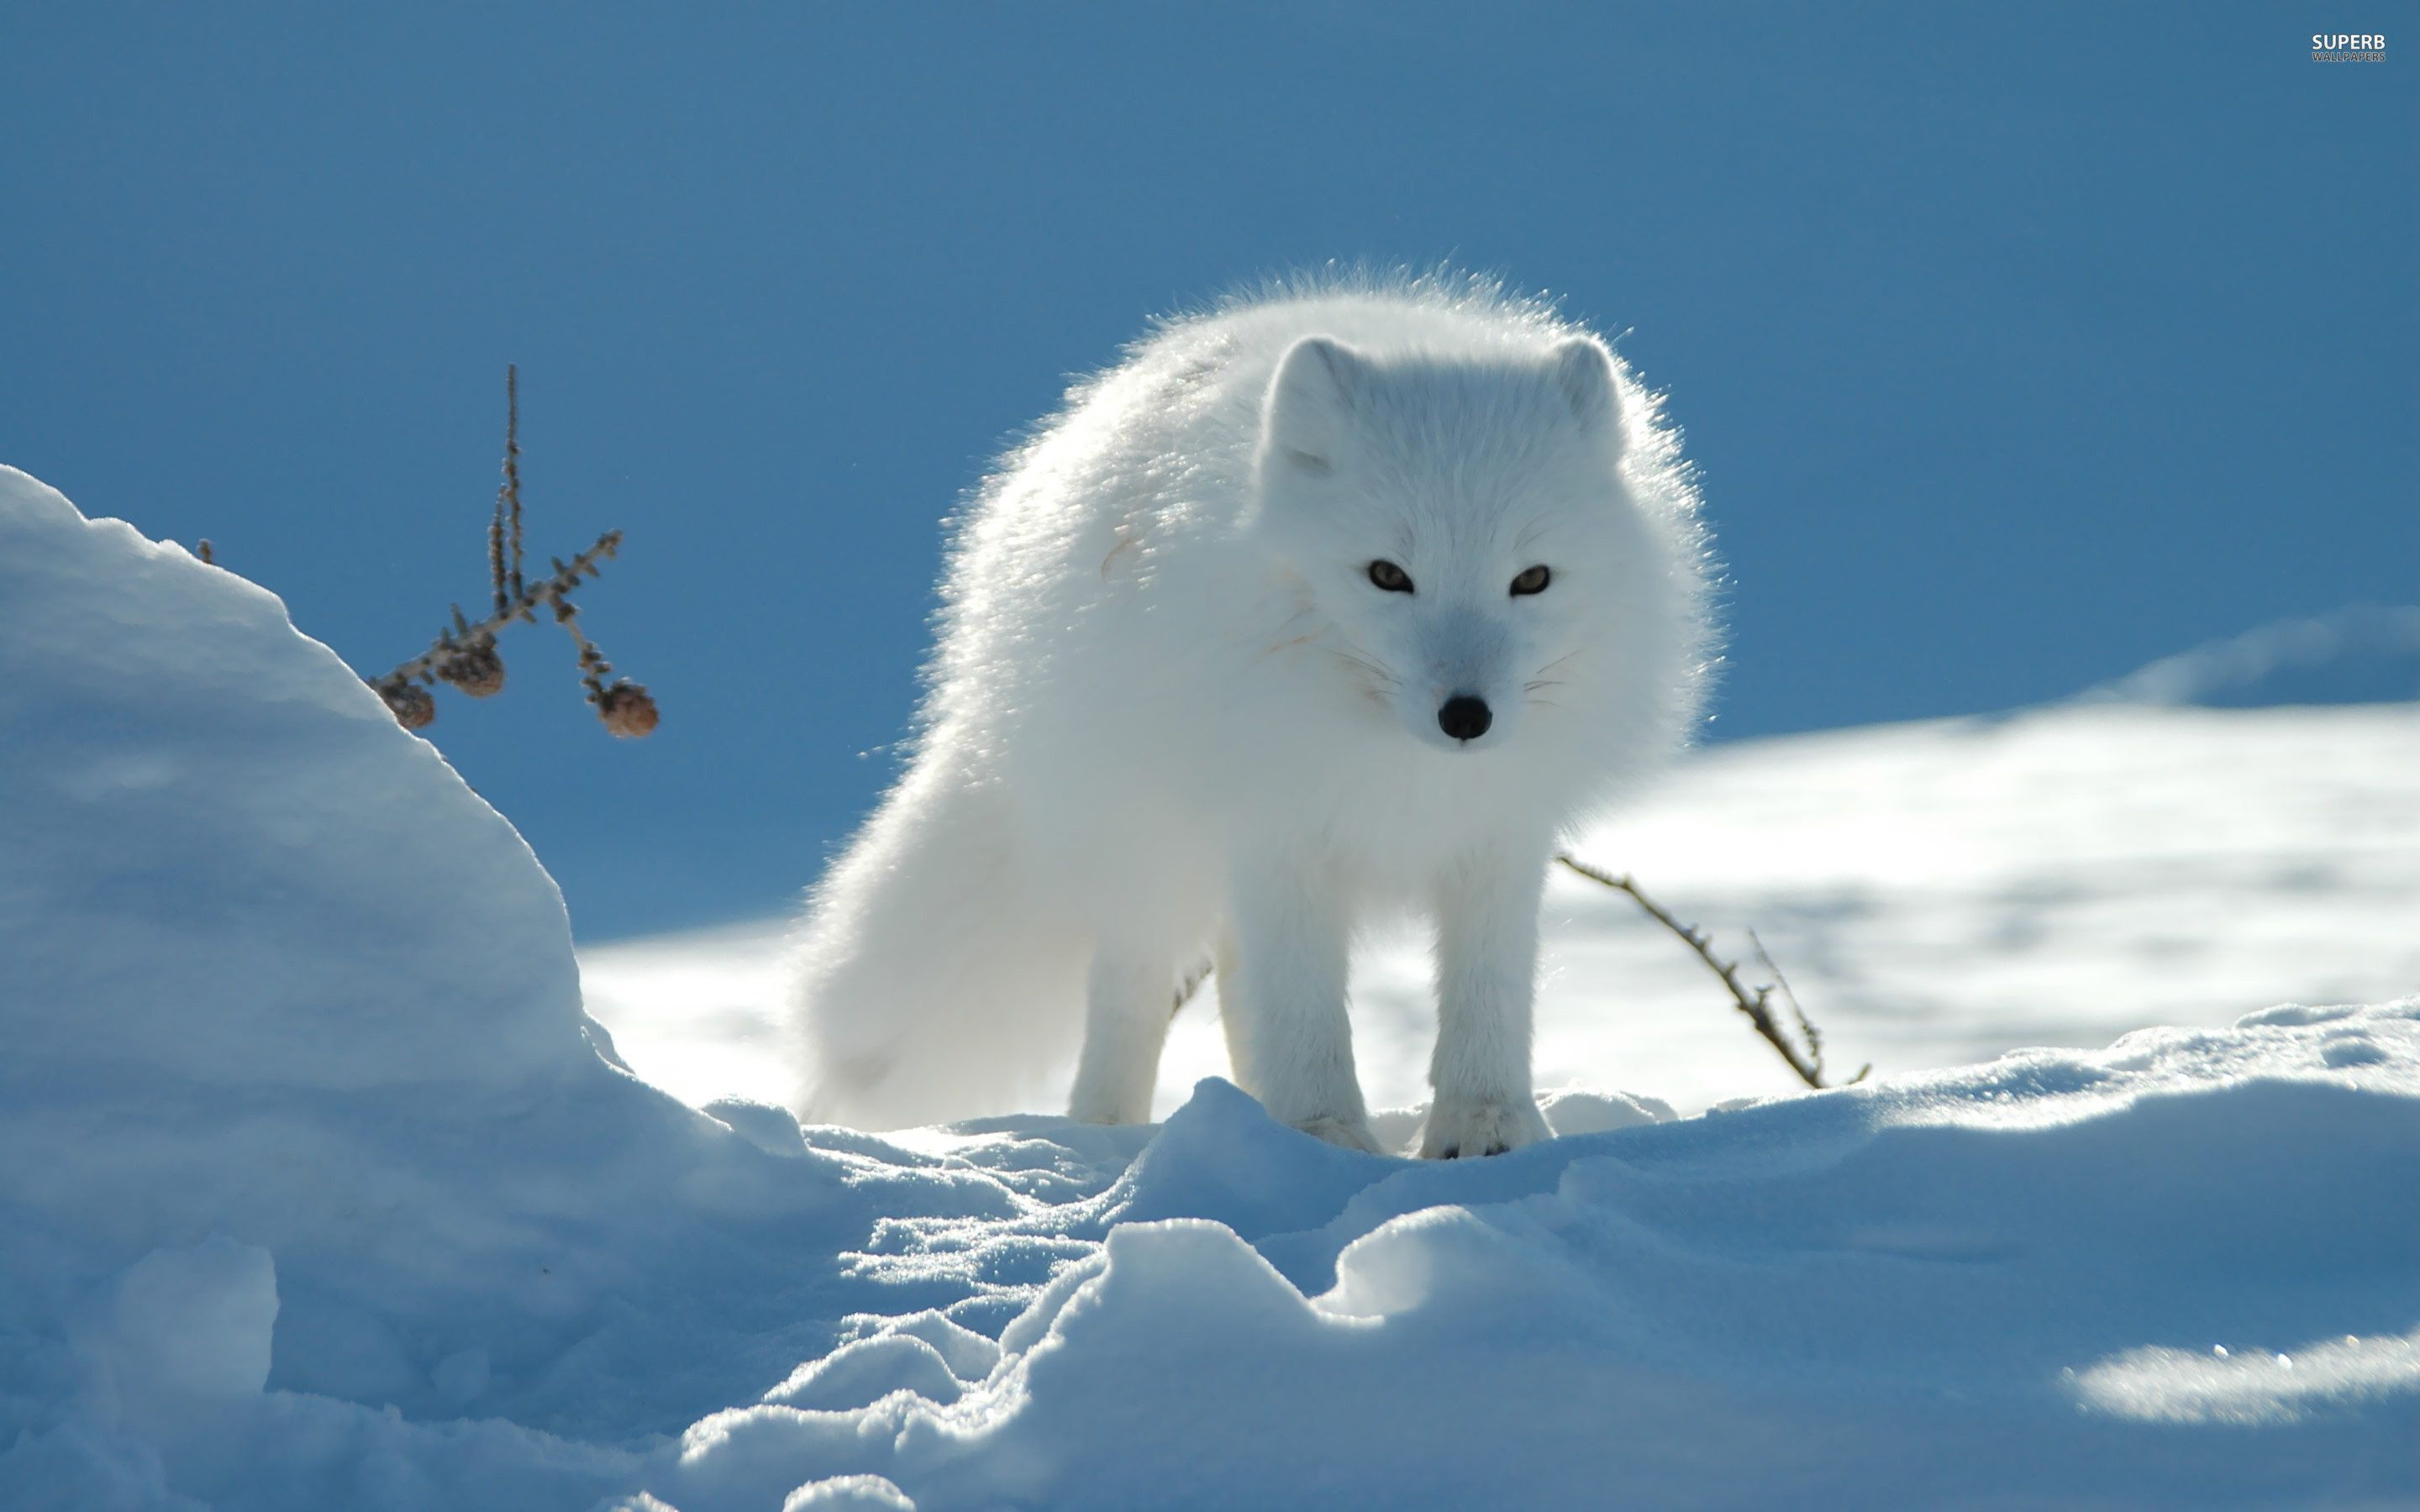 Arctic Fox Wallpapers Wallpaper | Wallpapers For Desktop ...